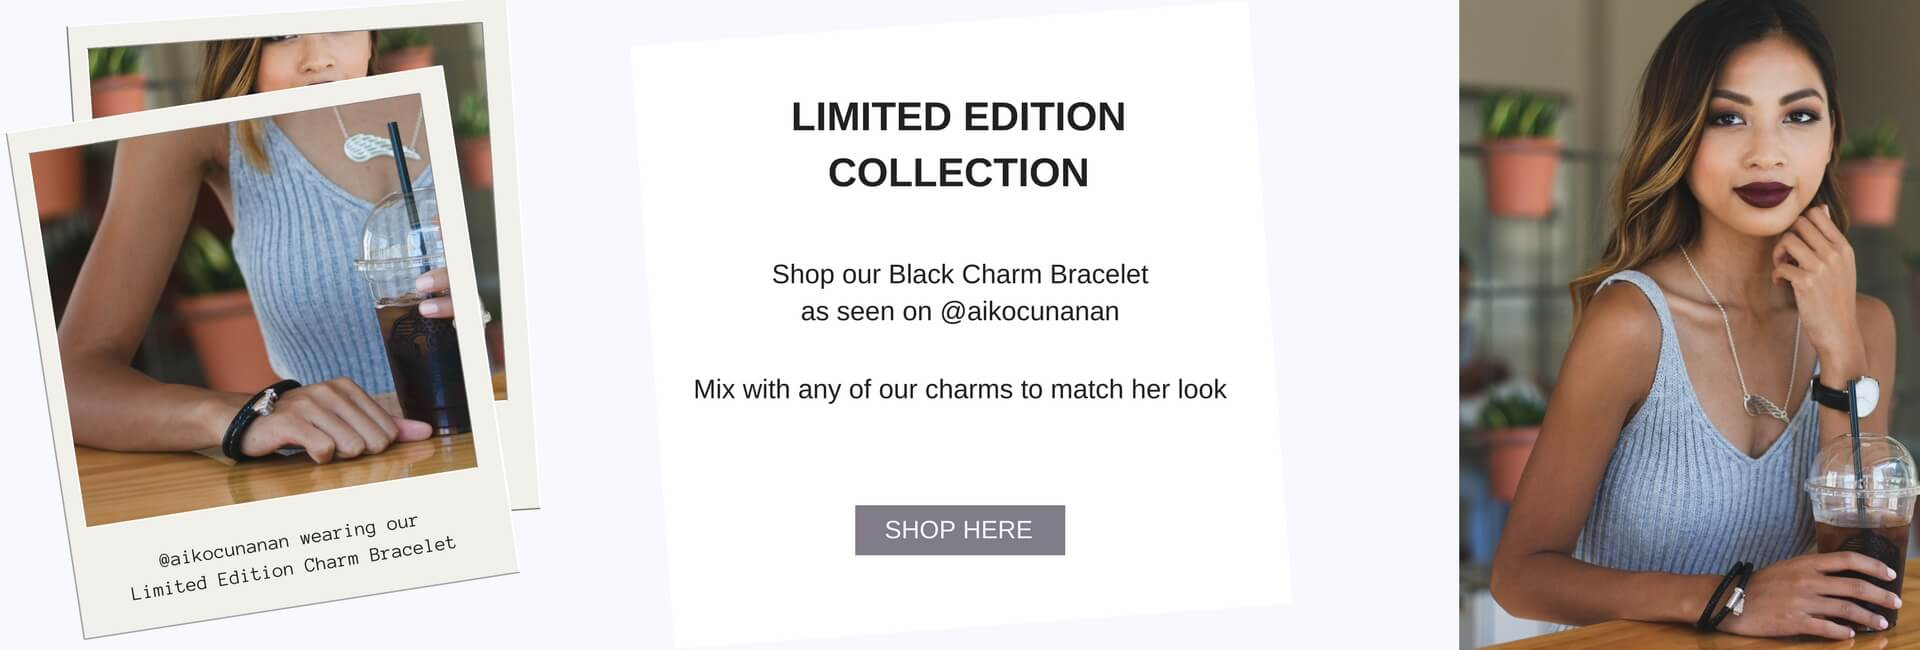 Jackie-Mack-Designs_Aiko_Cunanan_Limited-Edition-Black-Charm-Bracelet